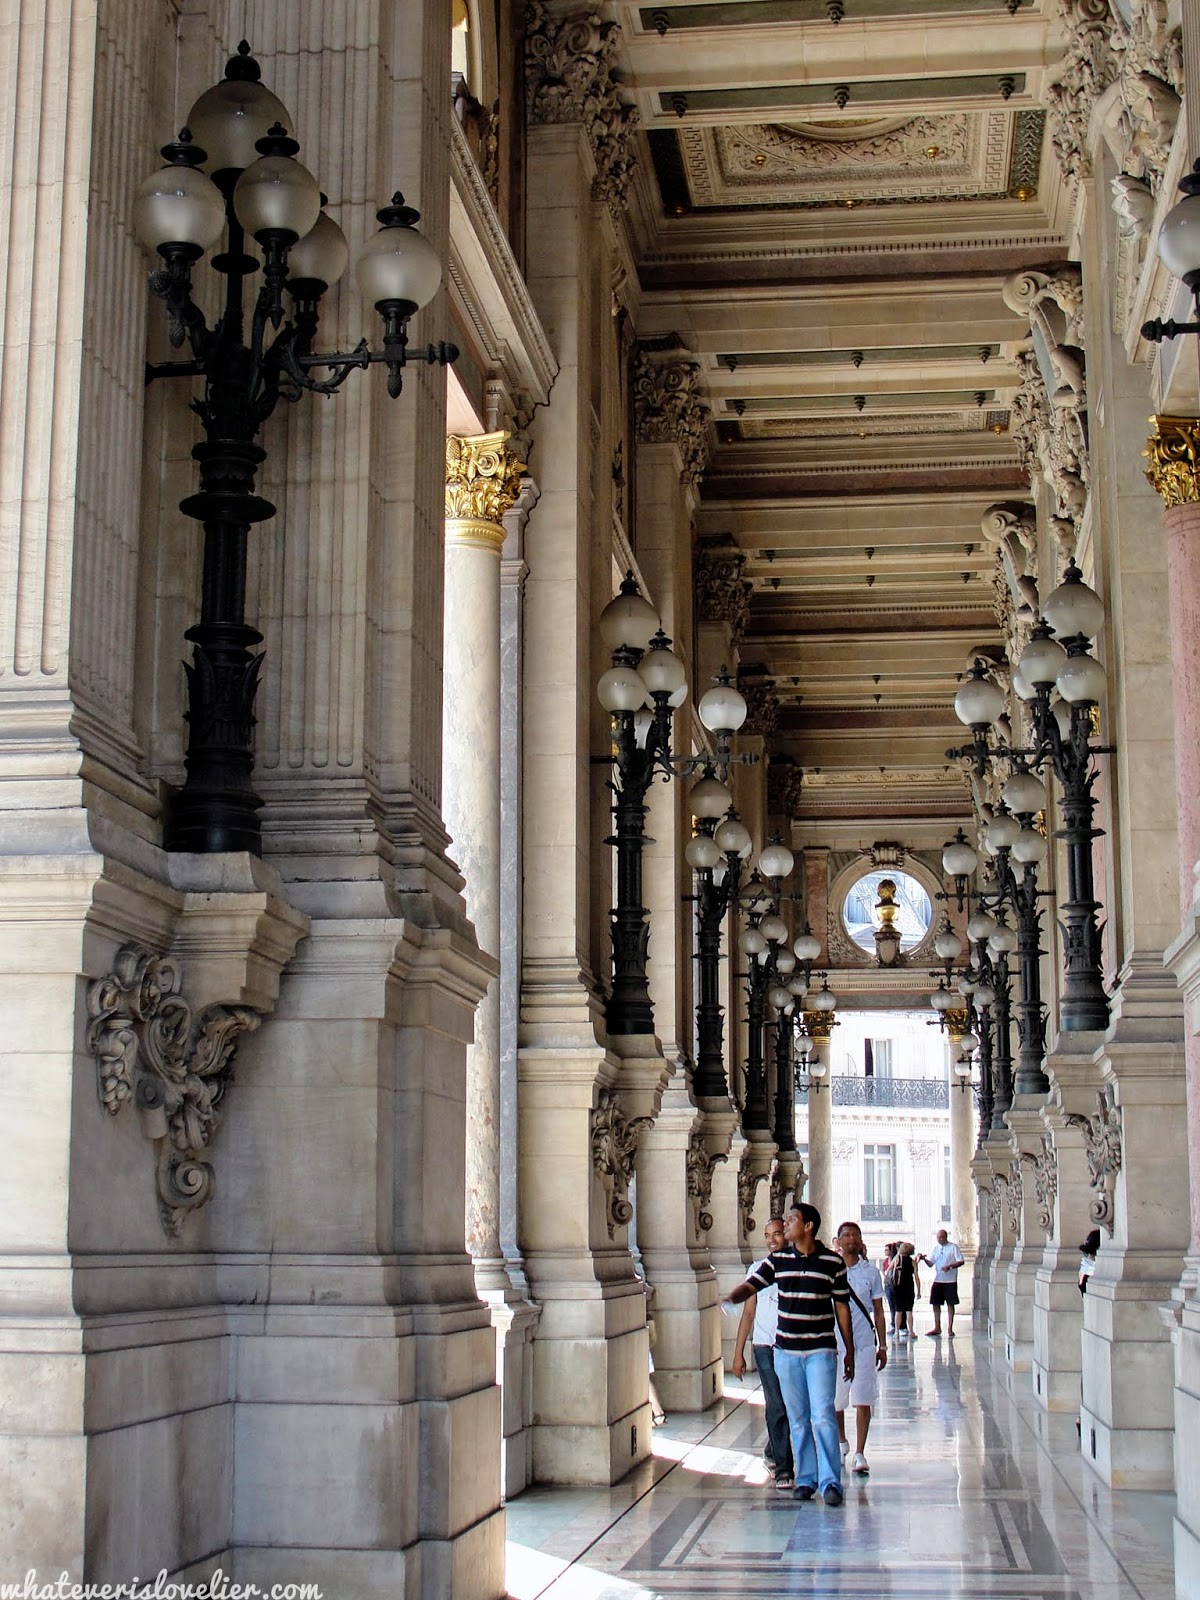 Travel Tuesday: Palais Garnier, Paris